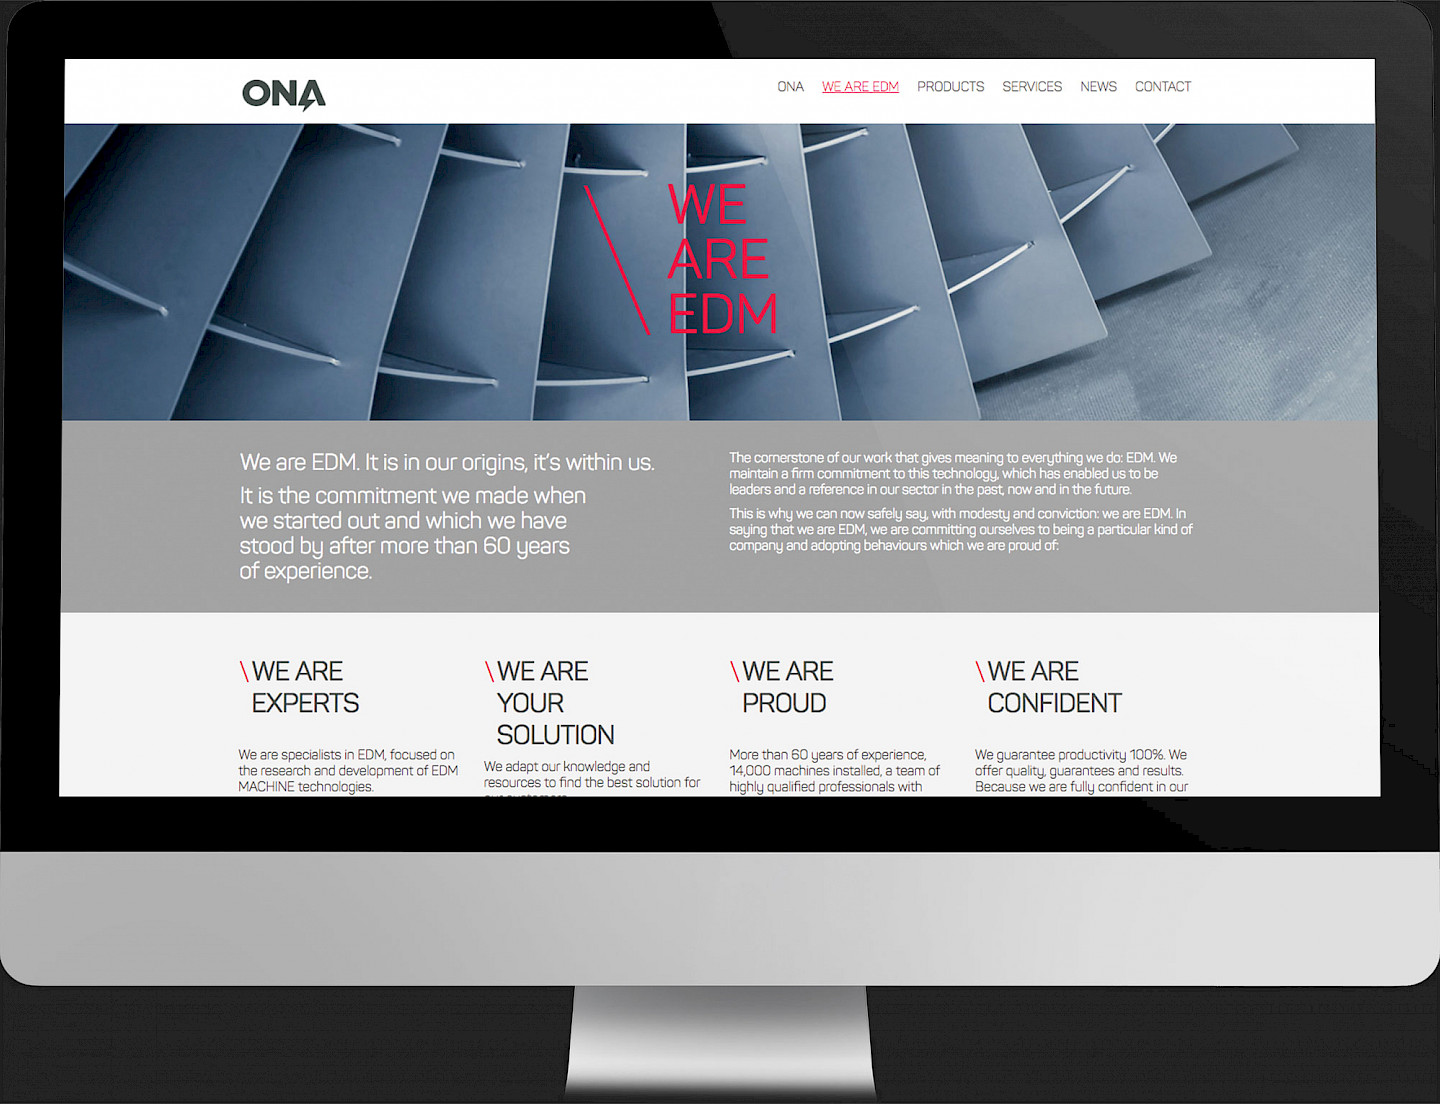 narrative ona website technology spaces 04 design move branding digital